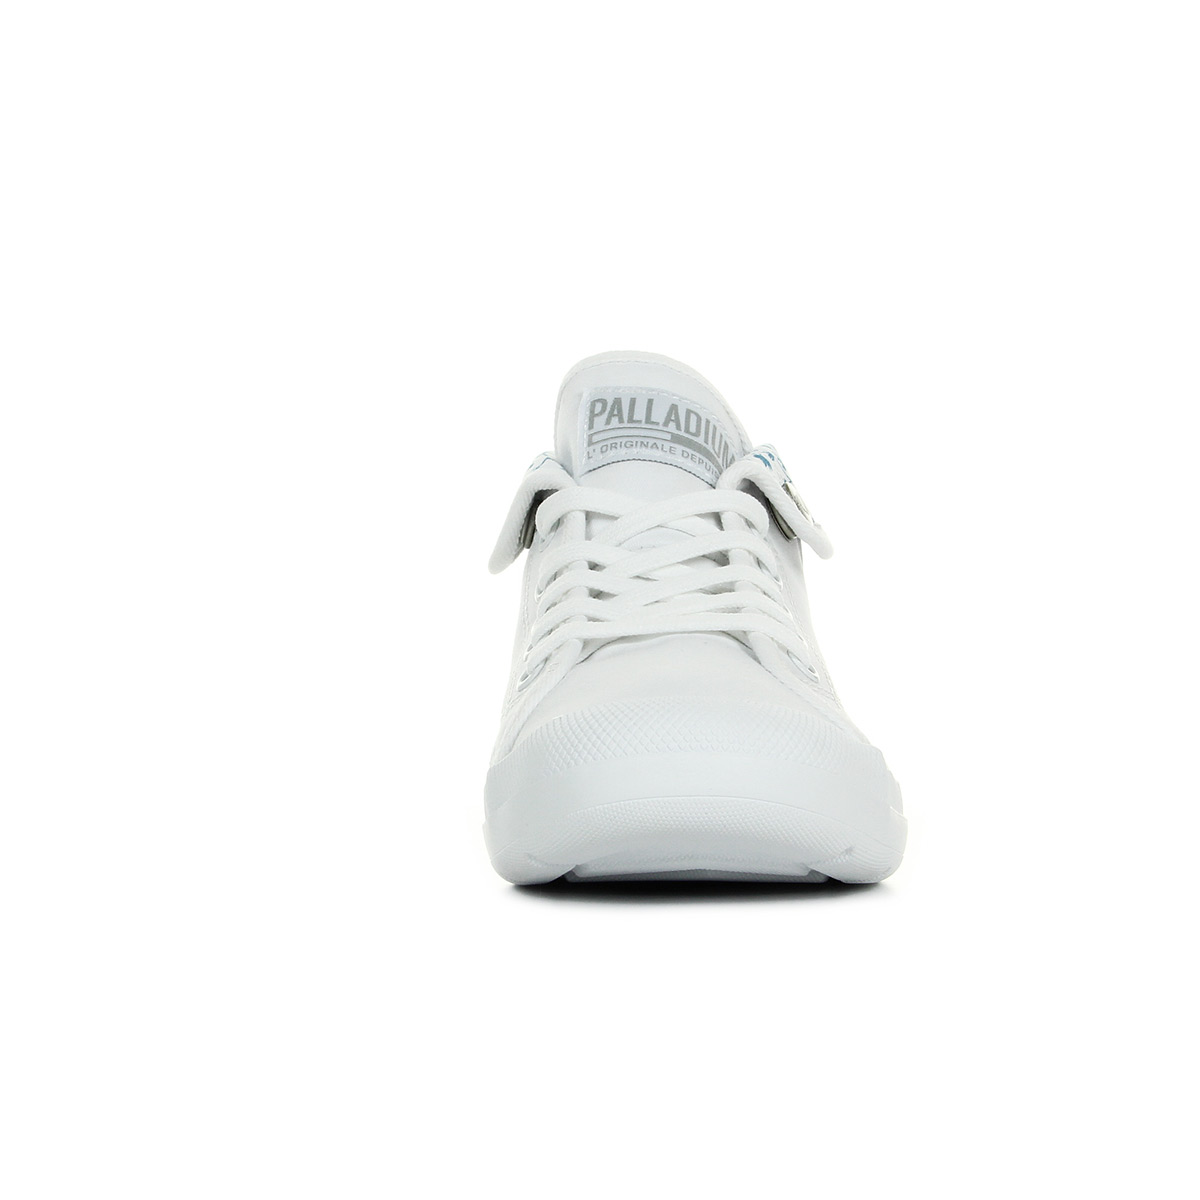 Palladium Aventure White 74687420, Baskets mode femme